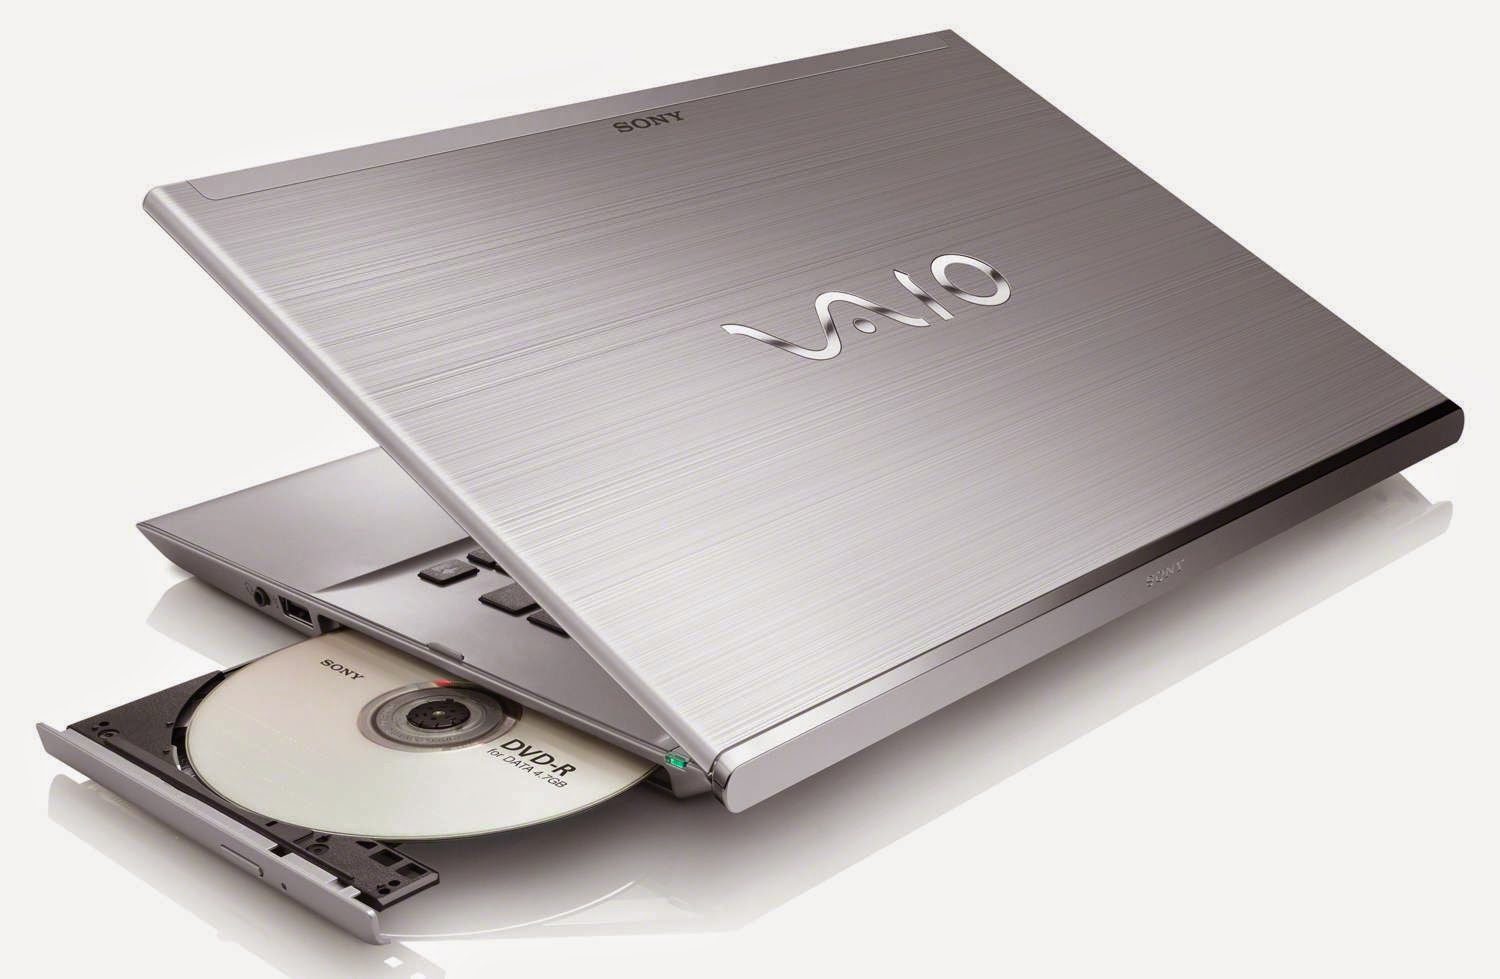 Guide to install drivers and utilities on the ultrabook Sony VAIO SVT14xxx for Operating Systems (OS) Windows 7 64bit (x64), Windows 8 64bit (x64) or Windows 10. In addition, I did build drivers for SVT14 details below link. This model has shortcomings - broken LCD 14-Inch with Touchscreen.  To successfully install and guaranteed operation buttons Fn, brightness, volume, input switching HDMI, and maximize uptime required to follow a strict sequence of installation of the drivers and utilities are already noticeable.    Link 1 Sony VAIO SVT14 Drivers Download Win 7, Win 8 & Win 10 Link 2 Sony VAIO SVT14 Drivers Download Win 7, Win 8 & Win 10  If the link is broken, be sure to write a comment or e-mail me, I will try as soon as possible to restore the link.   The procedure for installing the drivers for the next Windows 8 & Windows 10: 1. Intel ® Chipset Driver - Driver Motherboard 1.1. Intel ® Mobile Express Chipset SATA RAID Intel ® 7 Series Chipset Family SATA AHCI Controller - Drivers internal controllers  2. Intel ® Management Engine Interface - driver for the proper functioning of the system diagnostics of temperature modes of the internal components of the notebook.  4. Intel ® HD Graphics 4000 Driver - video card driver 4.1. Intel ® HD Graphics 4000 Update - Updated video card  5. Realtek ® High Definition Audio Driver - driver audio card 5.1. Audio Driver Registry Patch - patch the audio card driver  6. Realtek ® PCIE Card Reader Driver - Controller Driver Memory Card  7. Realtek ® PCIe GBE Family Controller - network driver Ethernet controller  8. Qualcomm ® Atheros ® AR3012 Bluetooth ® Adapter - Bluetooth driver 8.1. Qualcomm ® Atheros ® AR3012 Bluetooth ® Adapter Update - Update  9. Qualcomm ® Atheros ® AR9485WB-EG Wireless Network Bluetooth driver  10. Synaptics ® PS2 Port ClickPad - driver touchpad 10.1. Synaptics ® PS2 Port ClickPad Update - update  11. Sony ® Firmware Extension Parser Device Driver SFEP Driver ID SNY5001 - requires manual installation, in more detail how to do it here     12. VAIO ® Location Utility - just install and reboot your computer!  12.1. Sony ® Shared Library - just install and reboot your computer!  13. Hotkey Utilities - utility is responsible for the Fn button, and other multimedia keys laptop, simply install and reboot your computer!  14. Sony ® Wireless State Device  Install optional  15. Internet Explorer ® Customization Update  16. Clickpad Tutorial Movie Update   How to install drivers for Windows 7 following: 1. Intel ® Chipset Driver - Driver Motherboard 1.1. Intel ® Mobile Express Chipset SATA RAID SATA AHCI Controller- drivers internal controllers  2. Intel ® Management Engine Interface - driver for the proper functioning of the system diagnostics of temperature modes of the internal components of the notebook. 3. Intel ® USB 3.0 eXtensible Host Controller - set for correct operation and maximize the speed of USB 3.0  4. Intel ® HD Graphics 3000 4000 Driver - video card driver  5. Realtek ® High Definition Audio Driver - driver audio card  6. Realtek ® PCIE Card Reader Driver - controller driver read/write external memory card SD  7. Realtek ® PCIe GBE Family Controller - Controller Driver Ethenet LAN  8. Atheros ® AR3012 Bluetooth ® Adapter - Bluetooth driver  9. Atheros ® AR9485WB-EG Wireless Network Adapter - adapter driver Wi-FI  10. Synaptics ® PS2 Port ClickPad - driver touchpad laptop  11. Sony ® Firmware Extension Parser Device Driver SFEP Driver SNY5001 - requires manual installation, in more detail how to do it here    13. Sony ® Shared Library - install and reboot your computer!  14. Hotkey Utilities - install and reboot your computer!  15. VAIO ® Smart Network Software - install and reboot the computer necessary tool for network management  16. Wi-Fi Direct ™ Support Software- utility Wi-FI    If you attempt to unite some reason that does not work or you unwilling to spend your time - please contact us for help. Myproizvodim complete customization, installation and solve any problems laptops Sony VAIO.  Grisha Anofriev grisha.anofriev@gmail.com  Tags: SVT14112CXS, SVT14113CXS, SVT14115CXS, SVT14117CXS, SVT141190X, SVT1411BPXS, SVT14122CXS, SVT14122PXS, SVT14124CXS, SVT14125CXS, SVT14126CXS, SVT14127CXS, SVT141290X, SVT1412ACXS